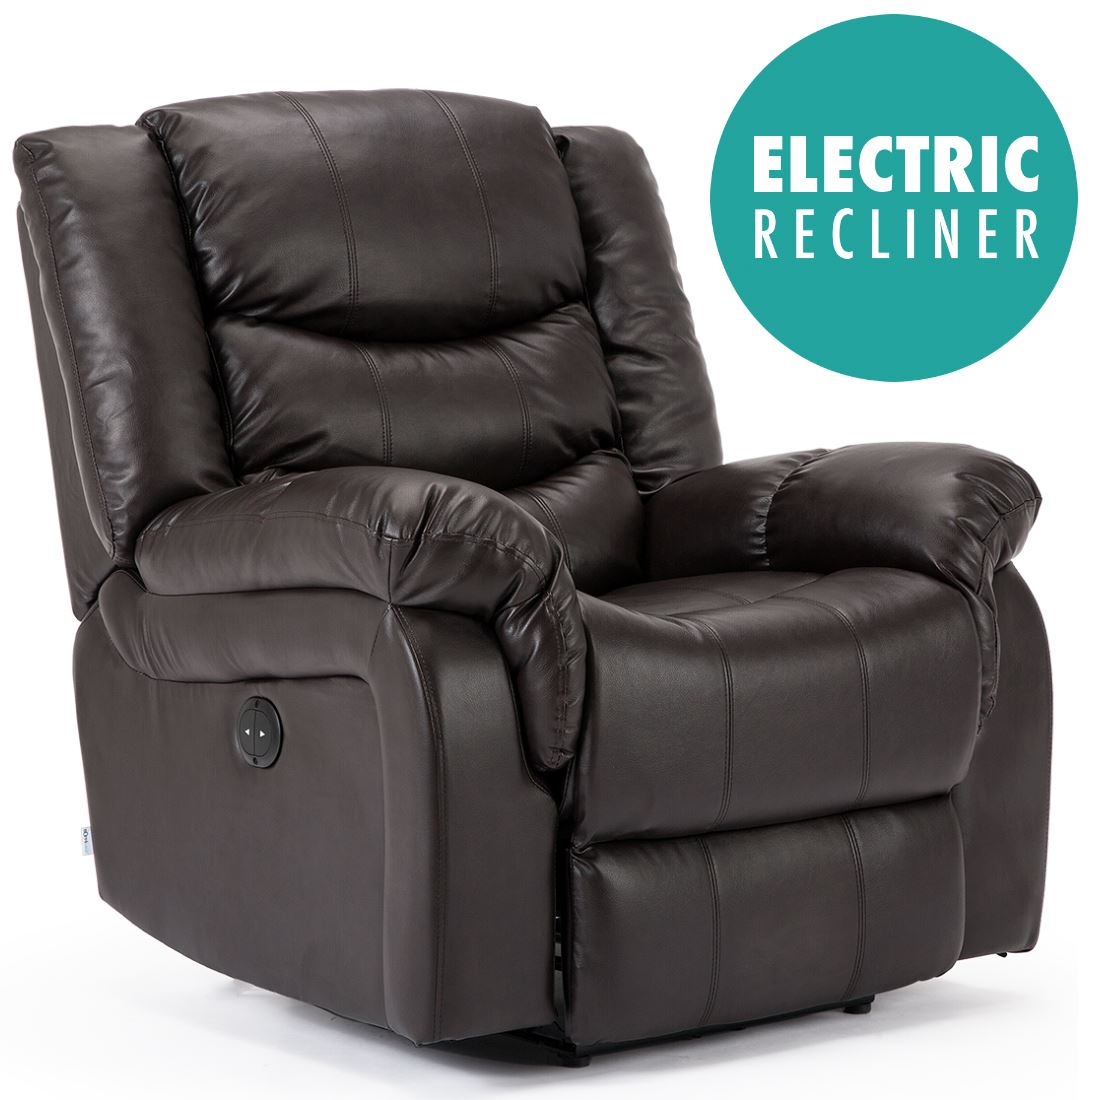 SEATTLE ELECTRIC LEATHER AUTO RECLINER ARMCHAIR SOFA HOME ...